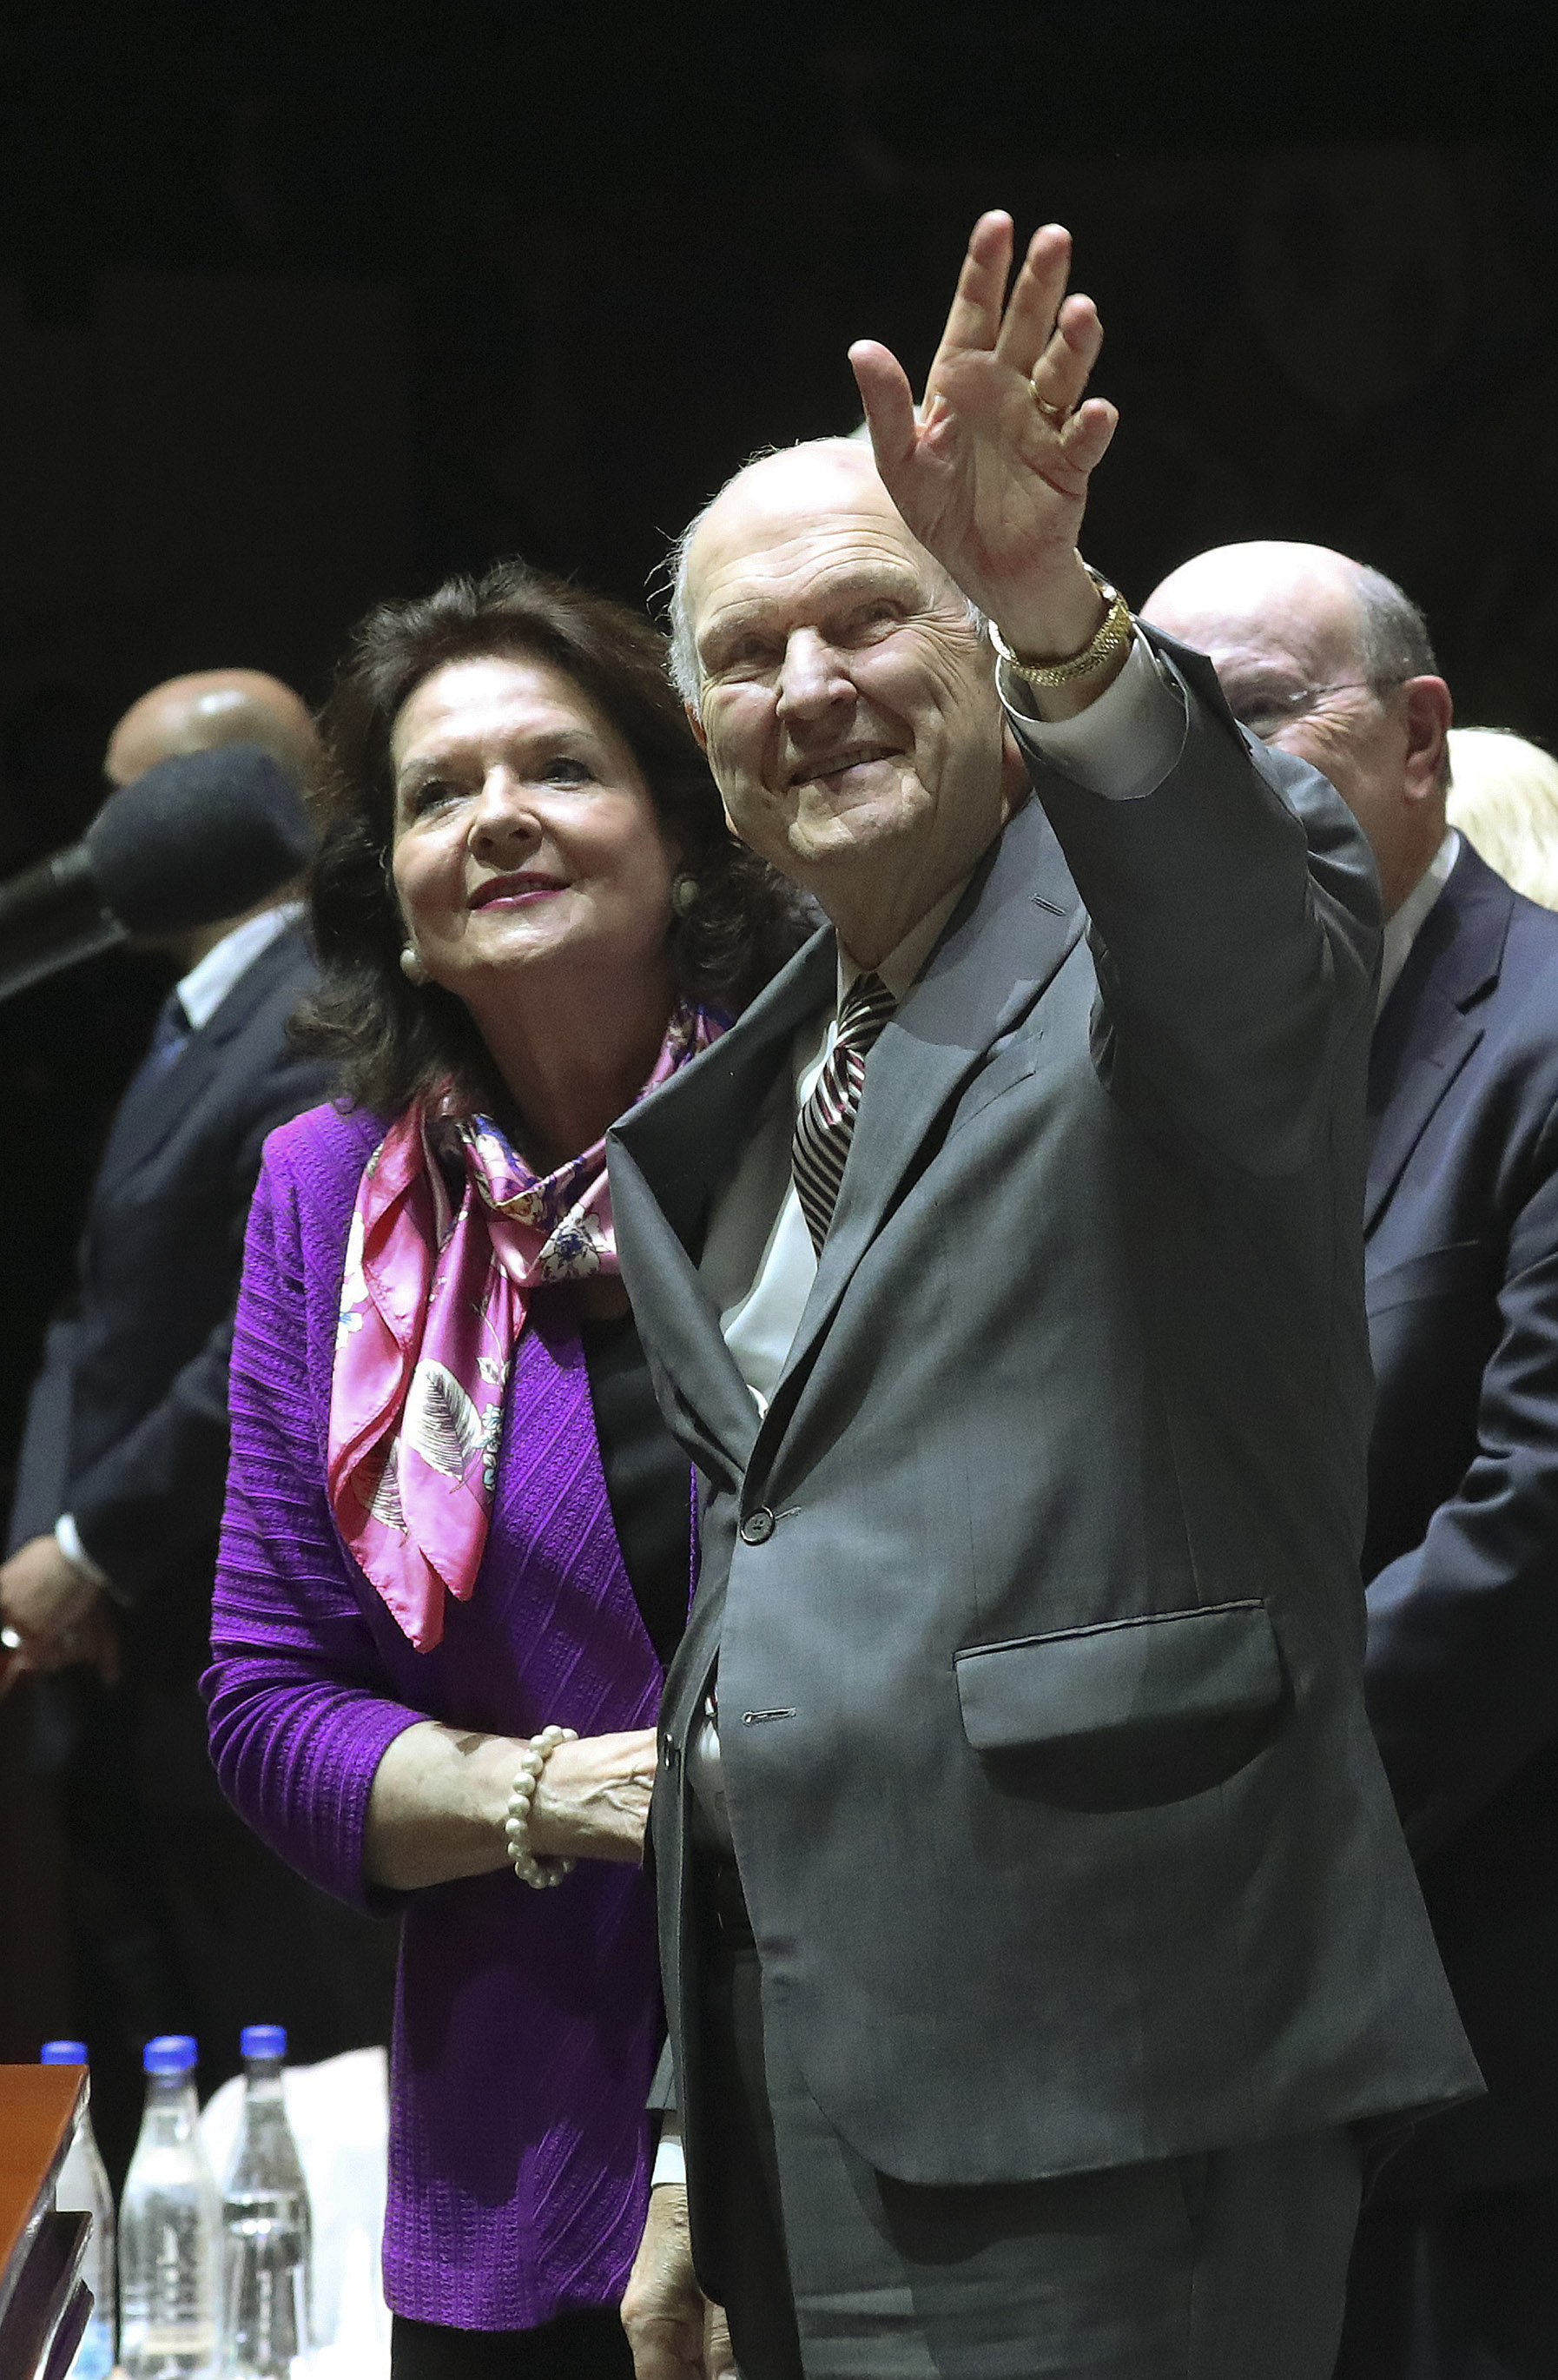 President Russell M. Nelson of The Church of Jesus Christ of Latter-day Saints and his wife, Sister Wendy Nelson, wave to attendees during a devotional at Movistar Arena in Bogota, Colombia, on Sunday, Aug. 25, 2019.